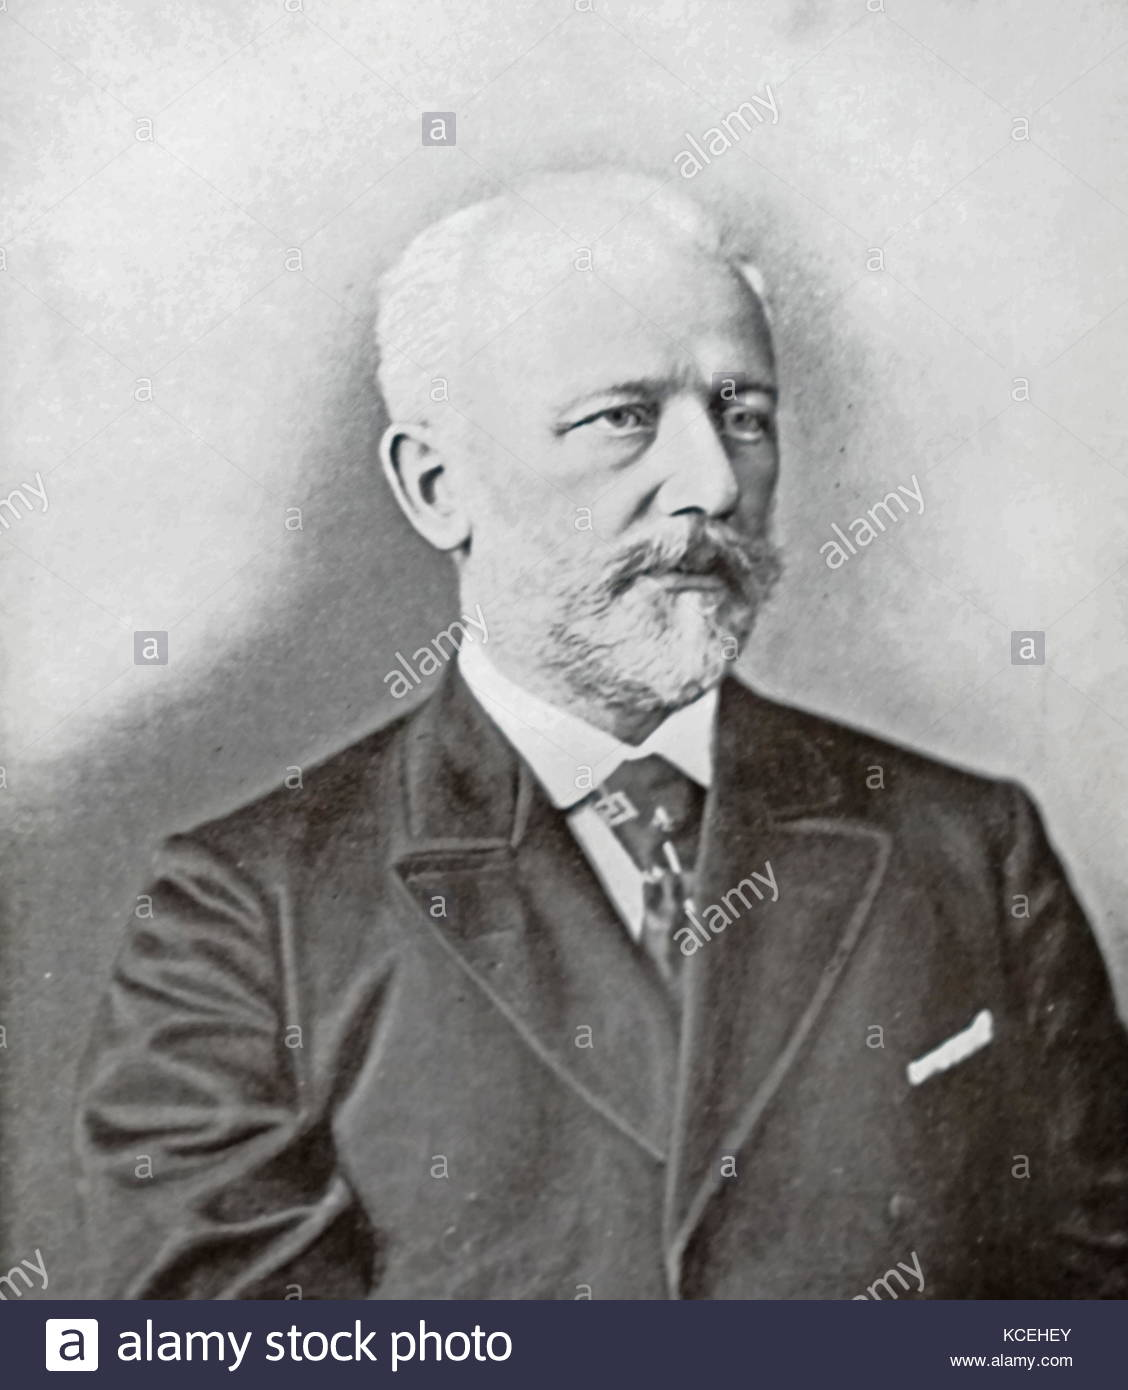 life and works of peter tchaikovsky Pyotr il′yich tchaikovsky (composer 1840-1893) - play streams in full or  download mp3 from  miscellaneous: commentary on tchaikovsky's life and  works.